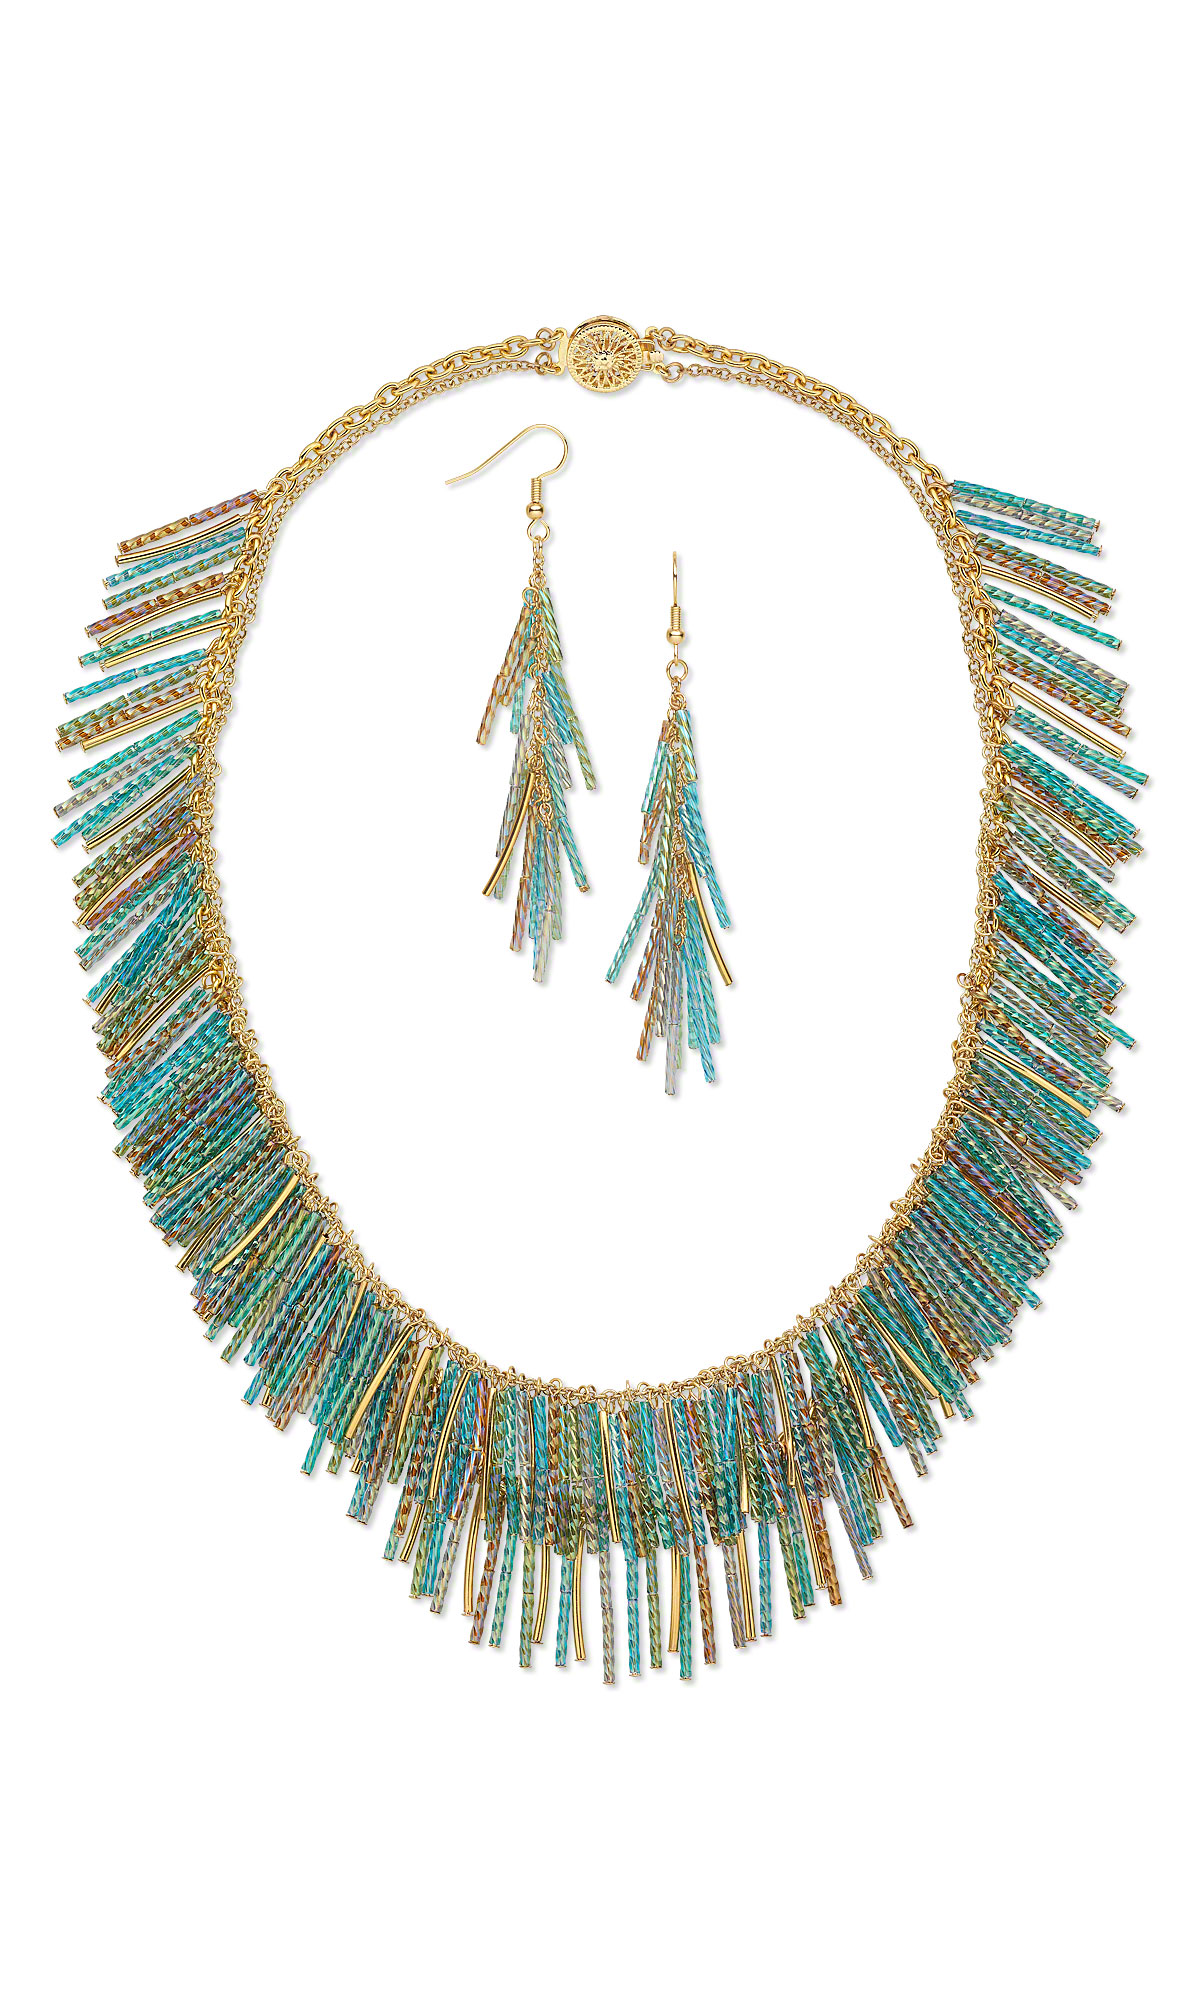 Collar Style Necklace And Earring Set With Bugle Beads